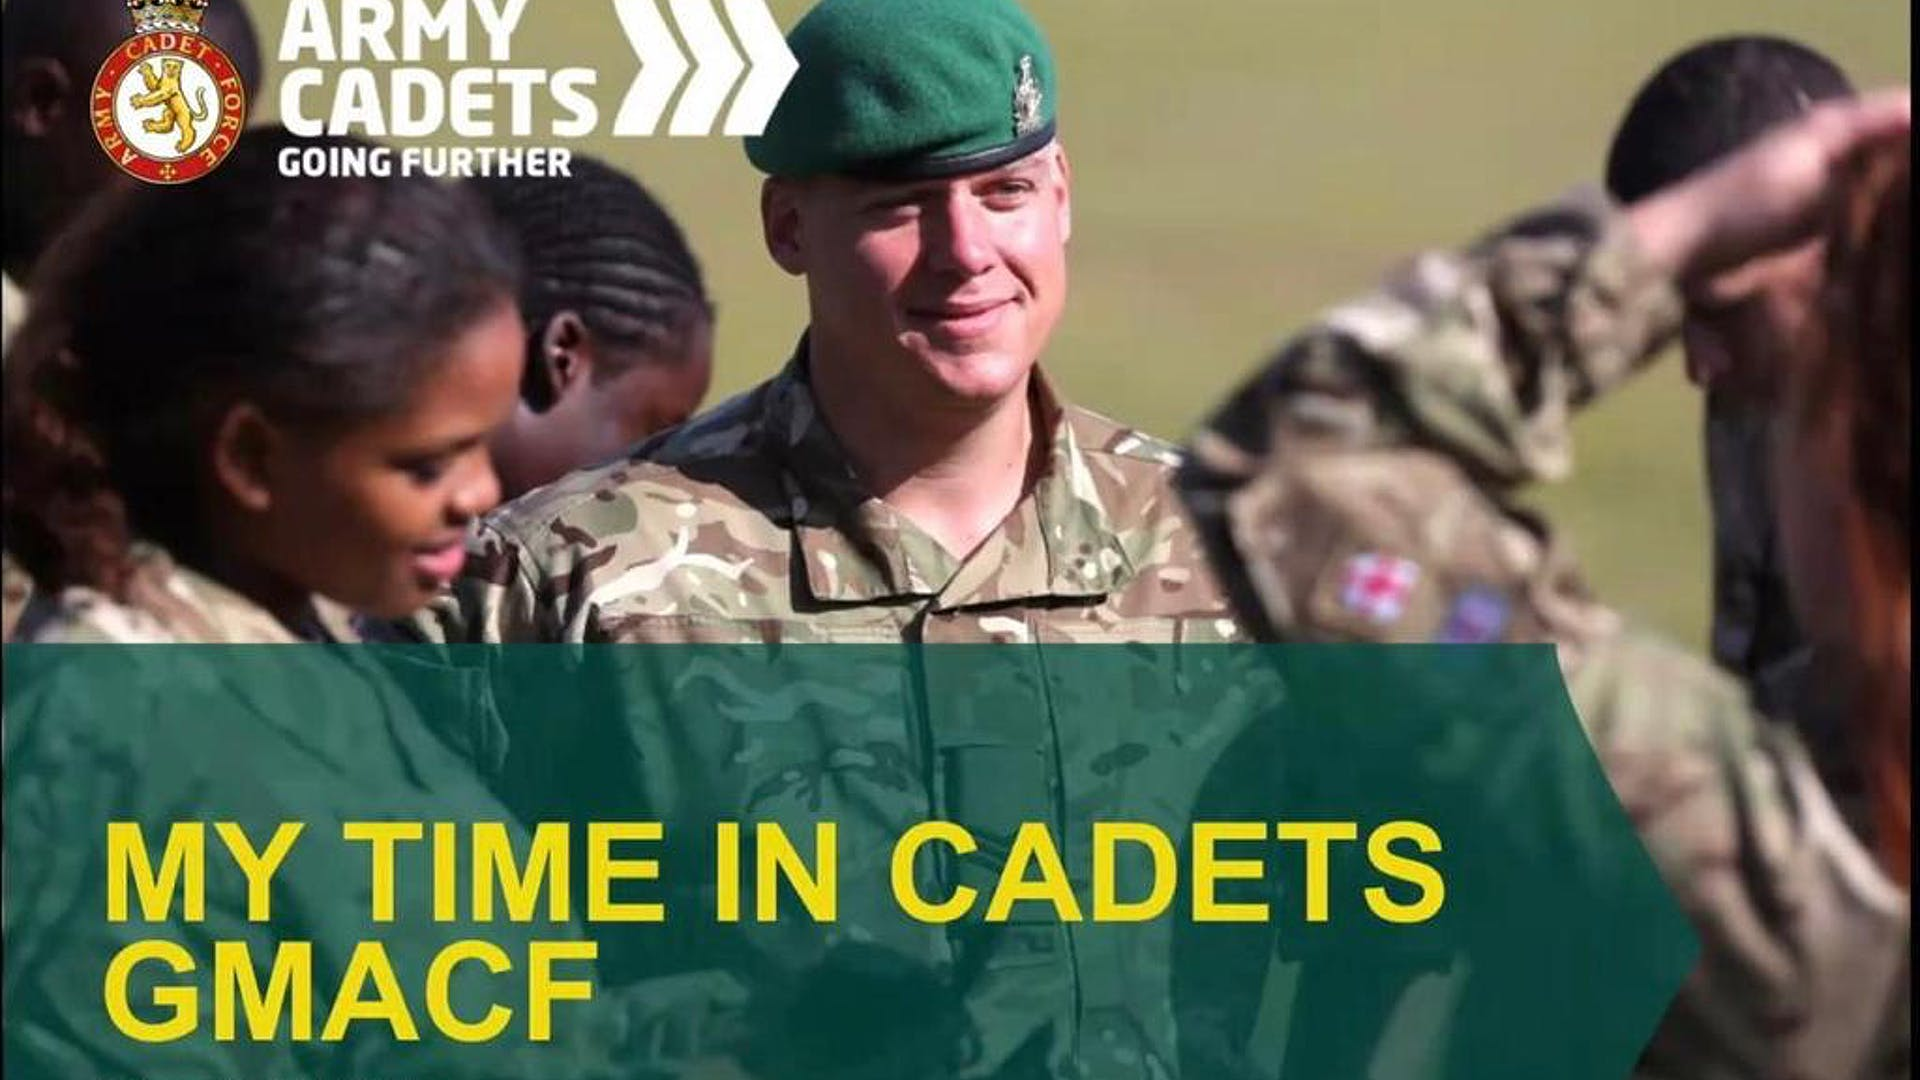 Talk to cadets by Cadet RSM May 2021 1